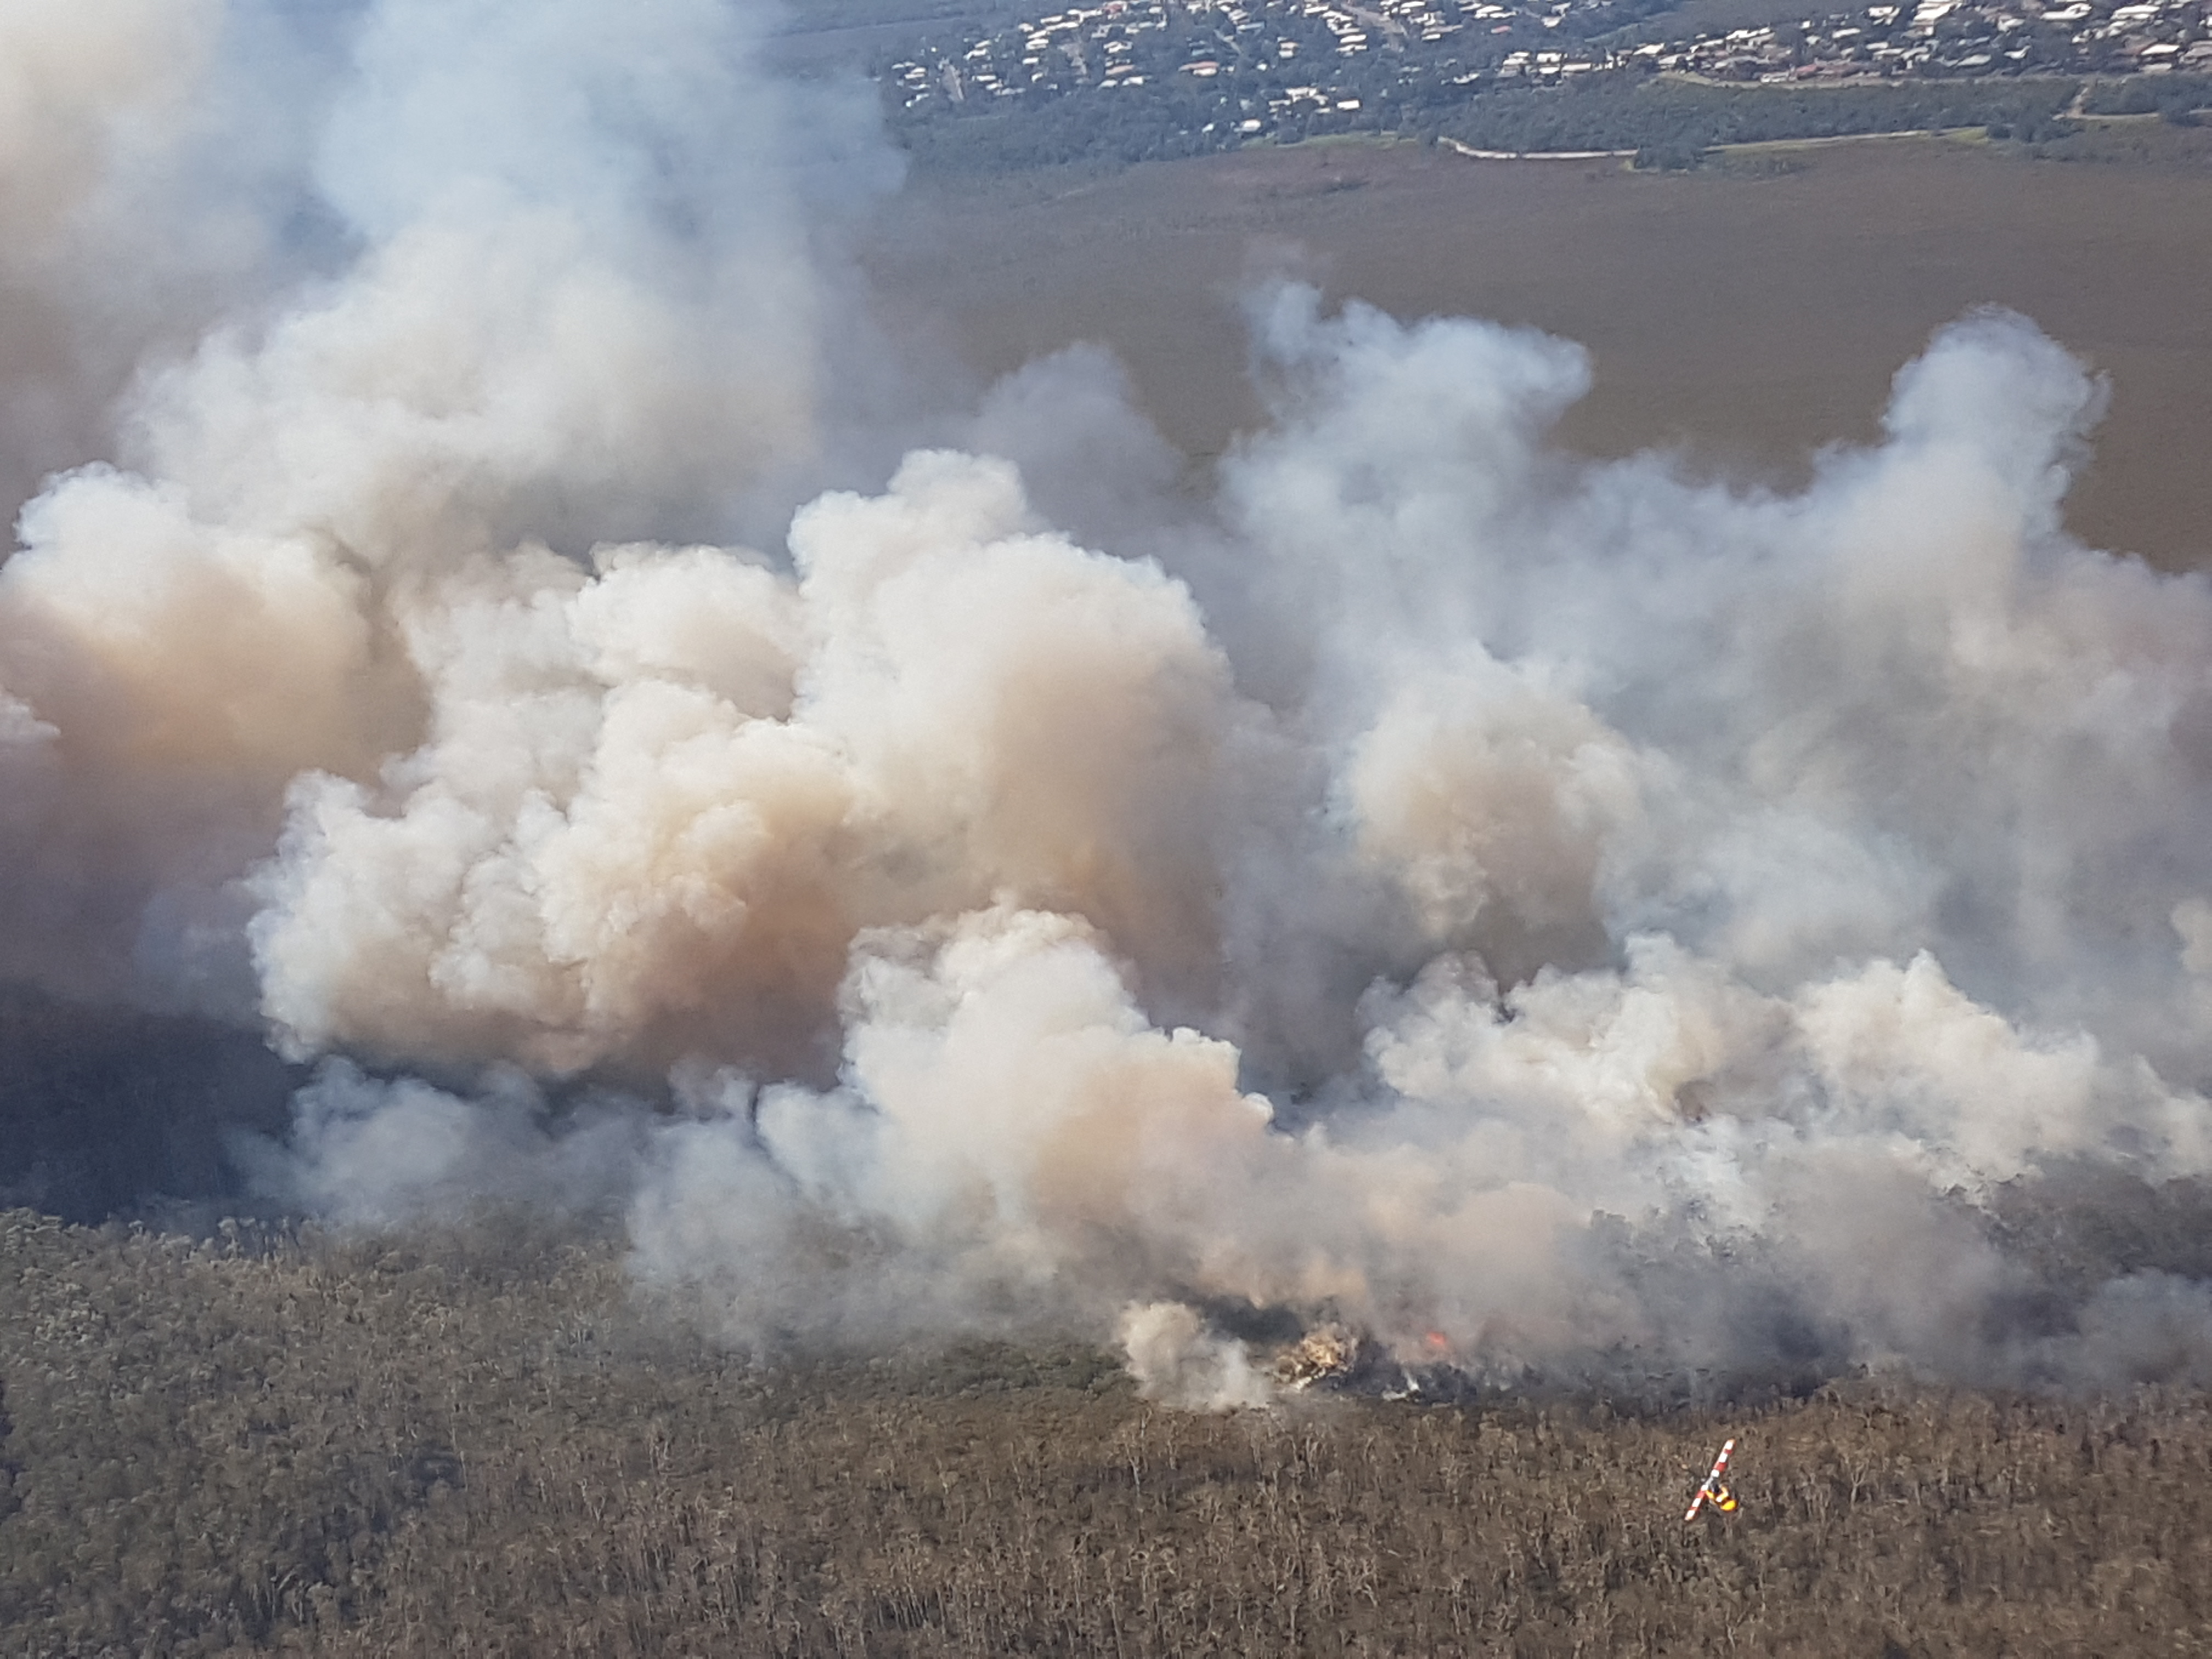 Efforts by QFES Air Ops in an aerial attack over Peregian